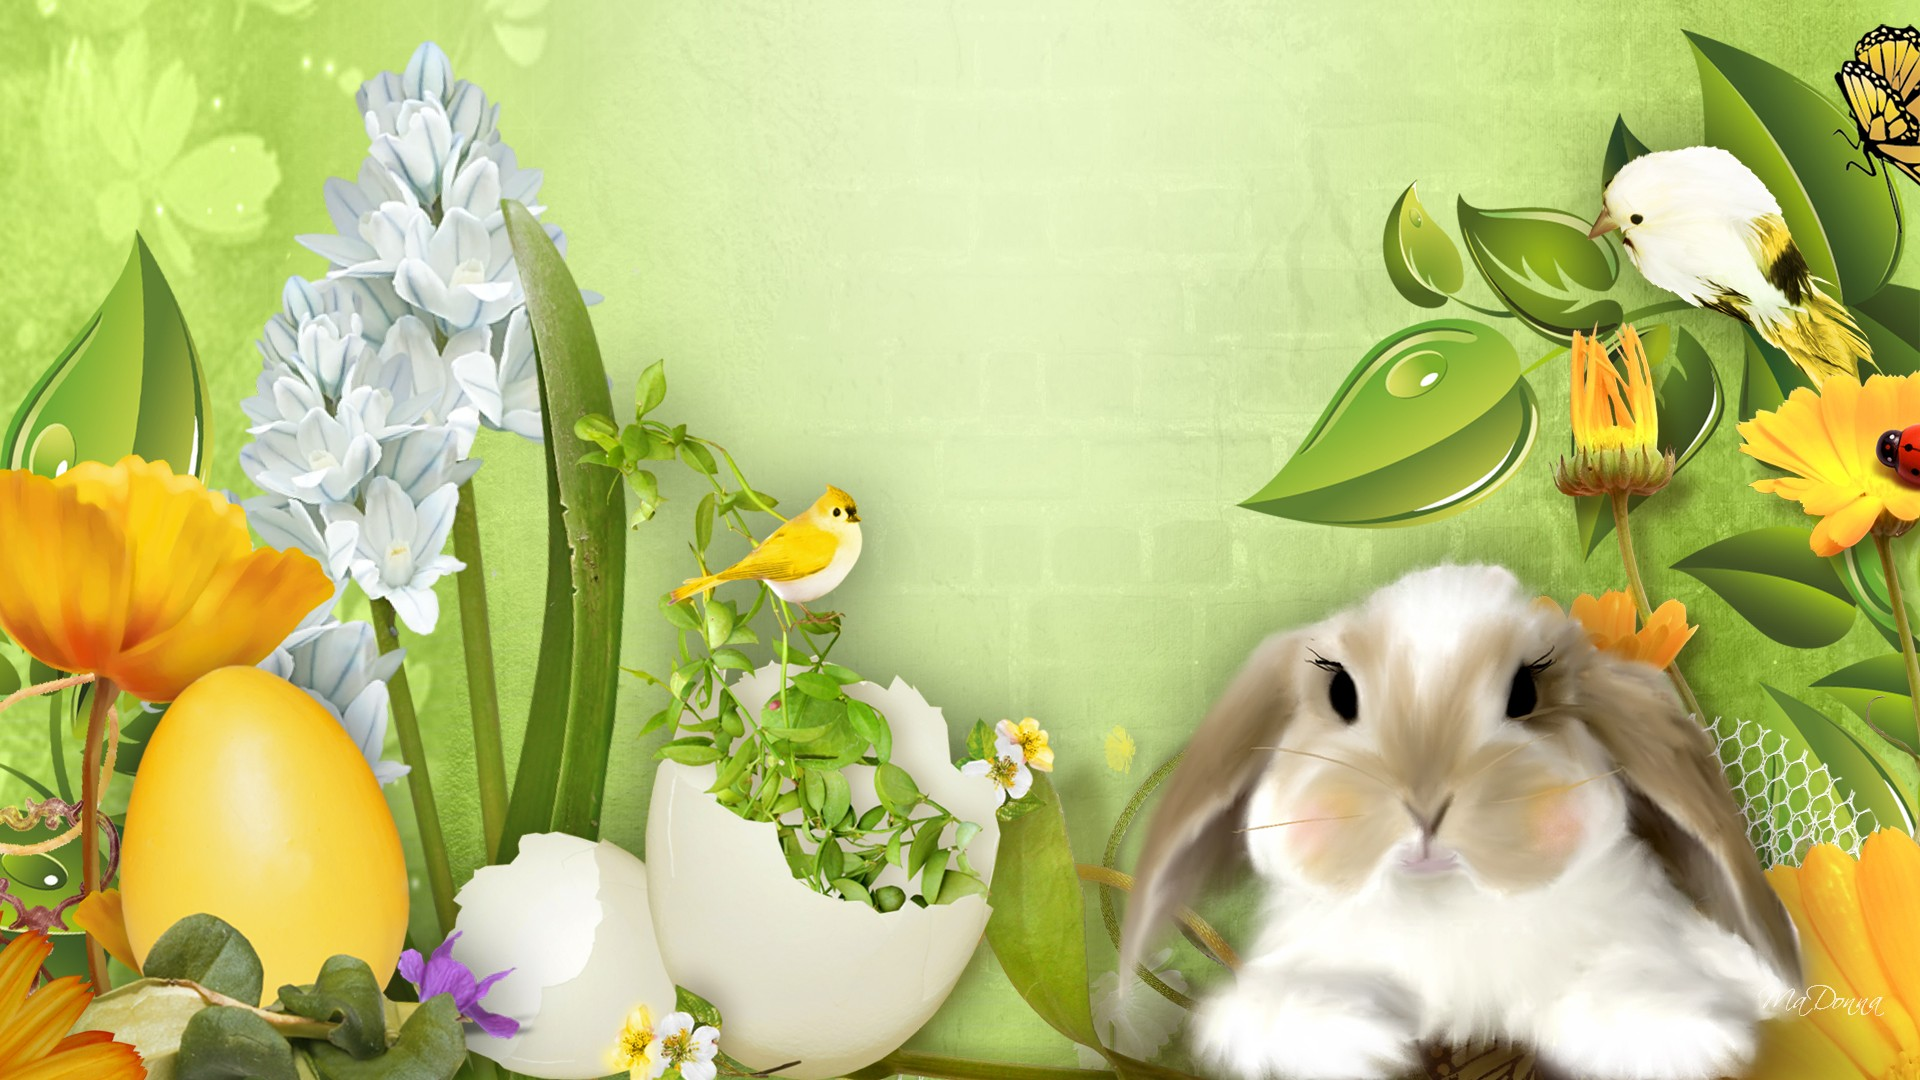 Easter 2014 HD   Wallpaper High Definition High Quality 1920x1080